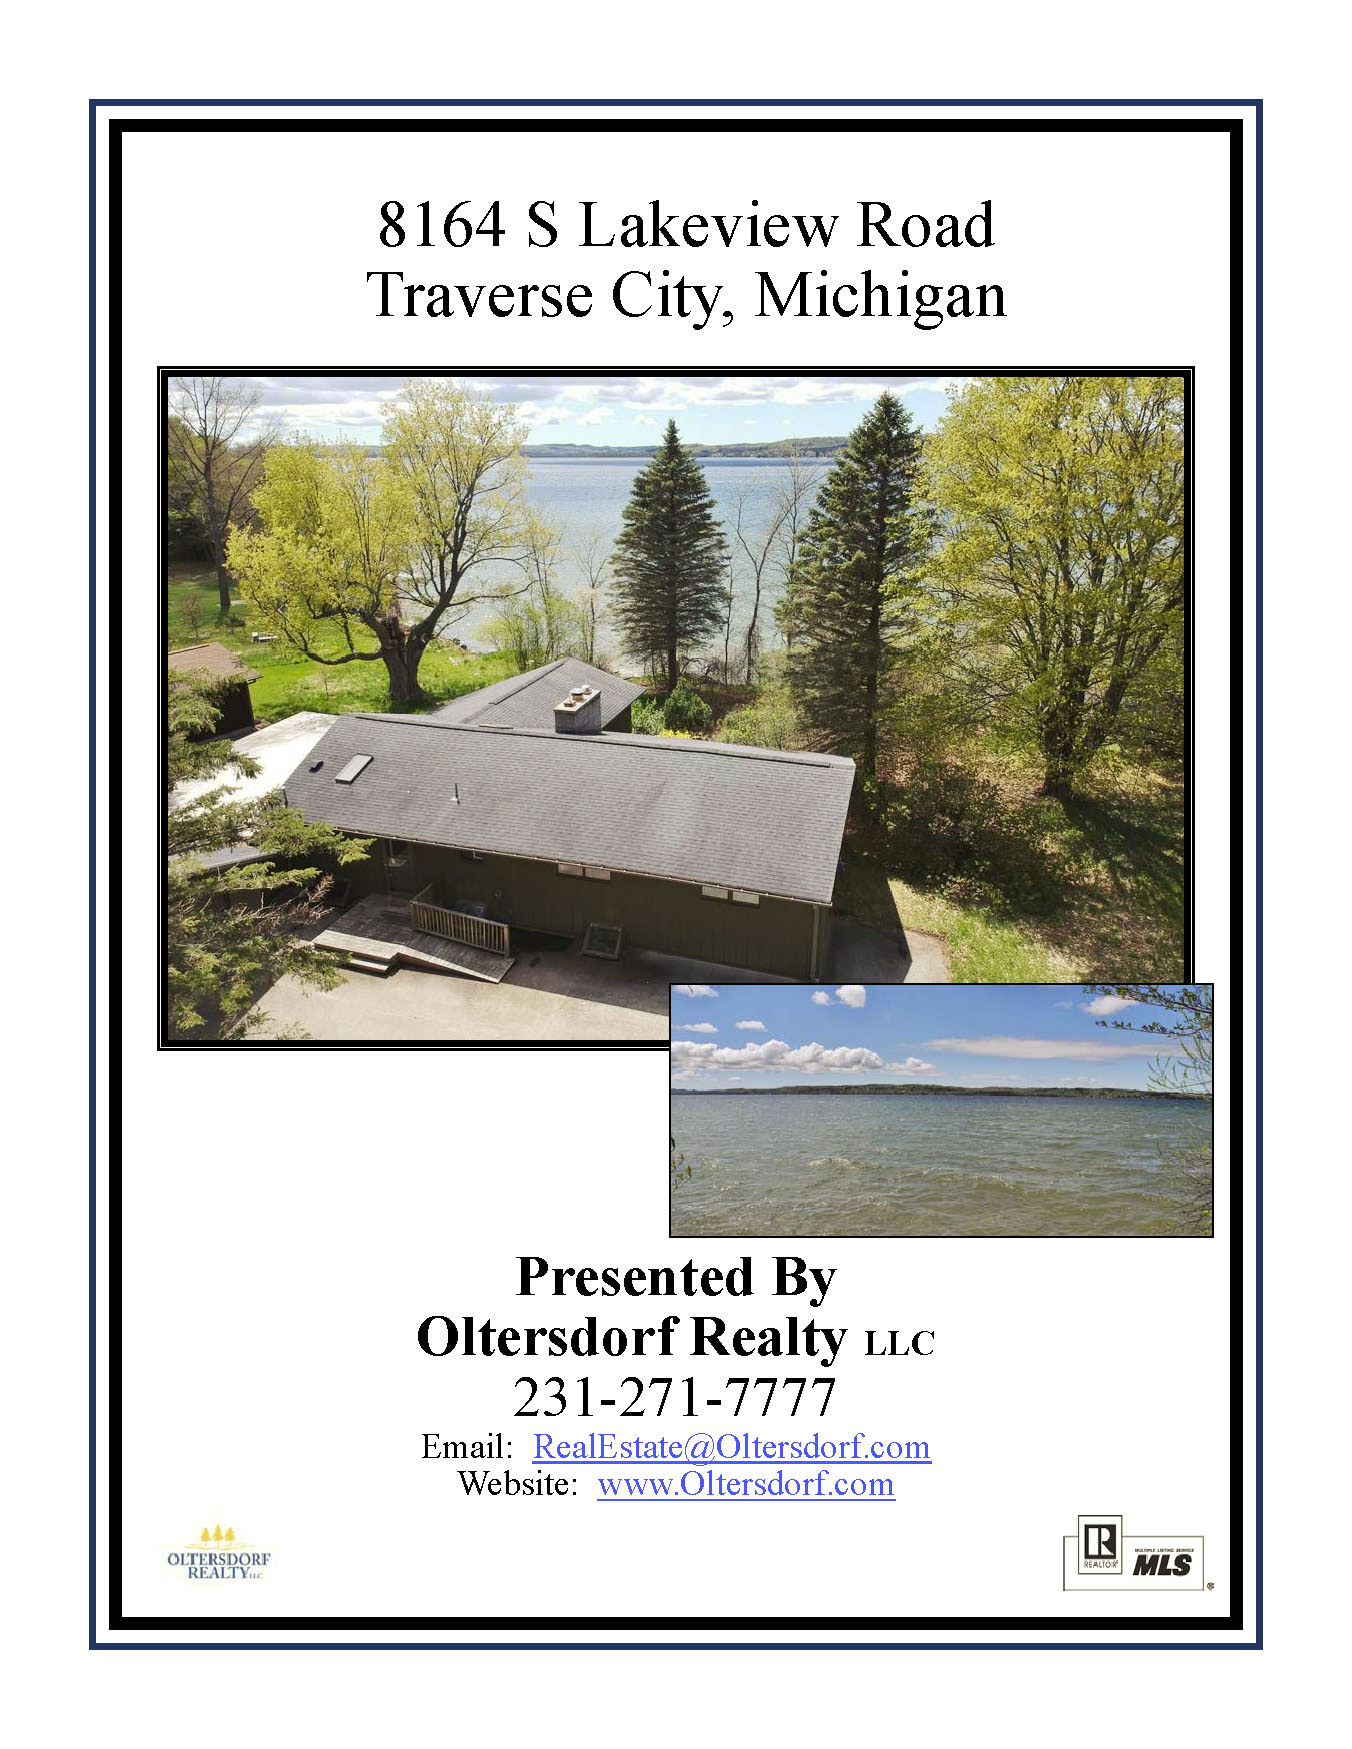 8164 S Lakeview Road, Traverse City, MI – Ranch Home & 100' on Lake Leelanau - For Sale by Oltersdorf Realty LLC - Marketing Packet (1).jpg